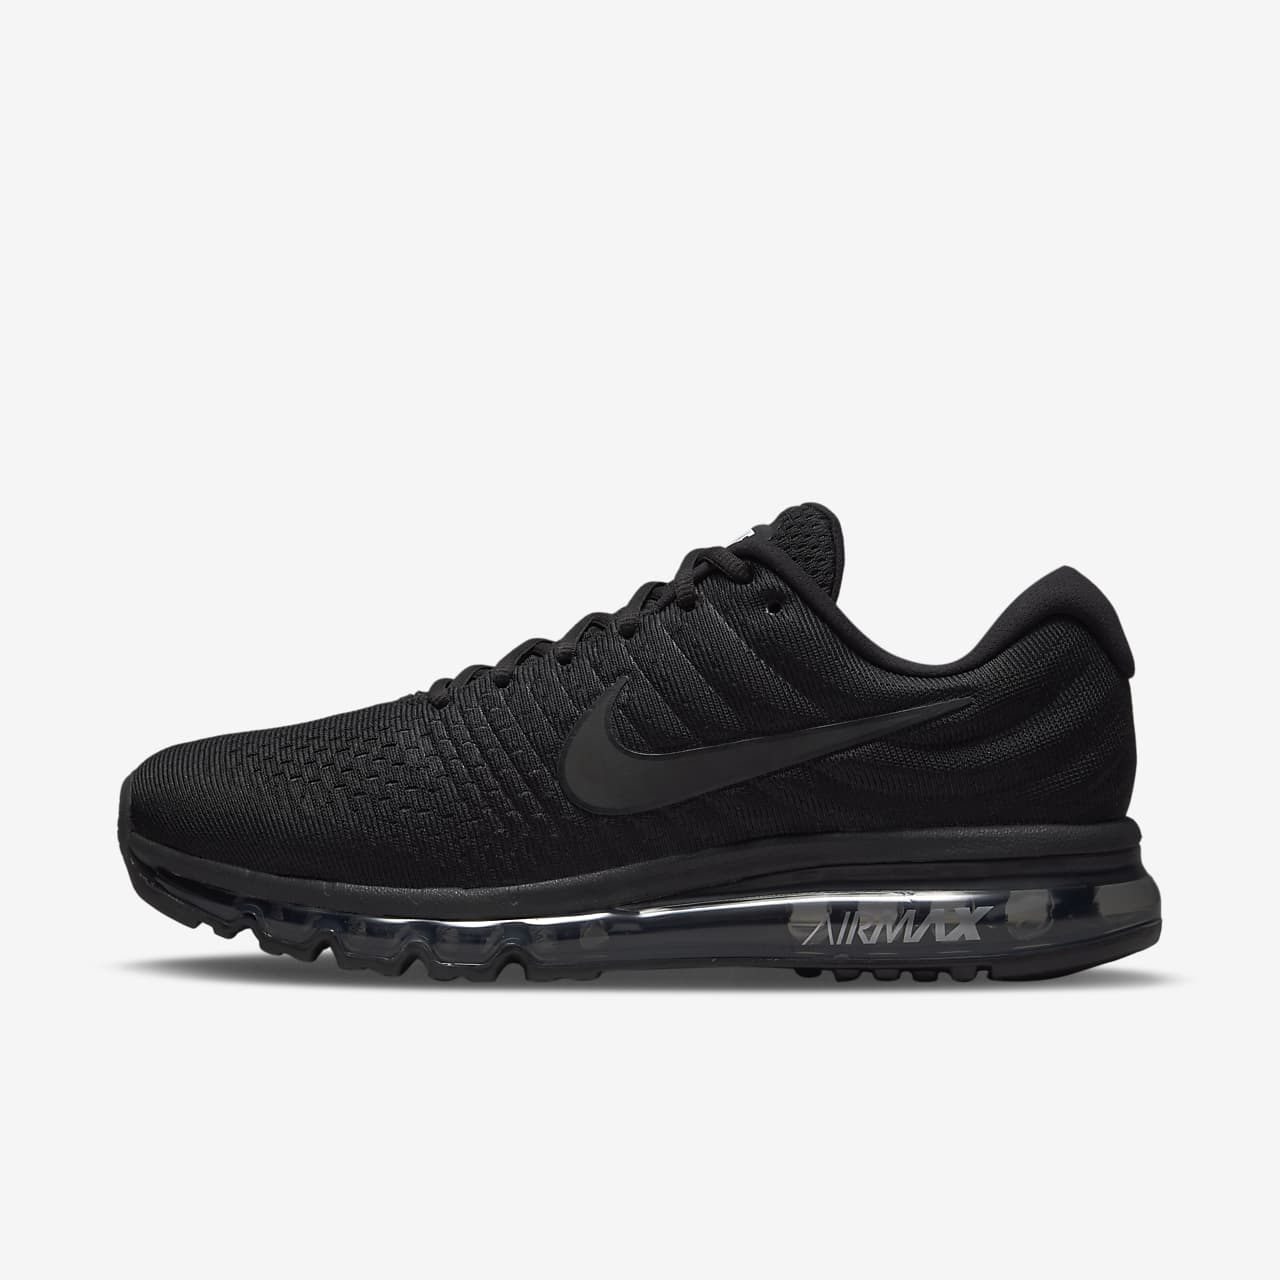 ac859a7d53ff Nike Air Max 2017 Men s Shoe. Nike.com GB